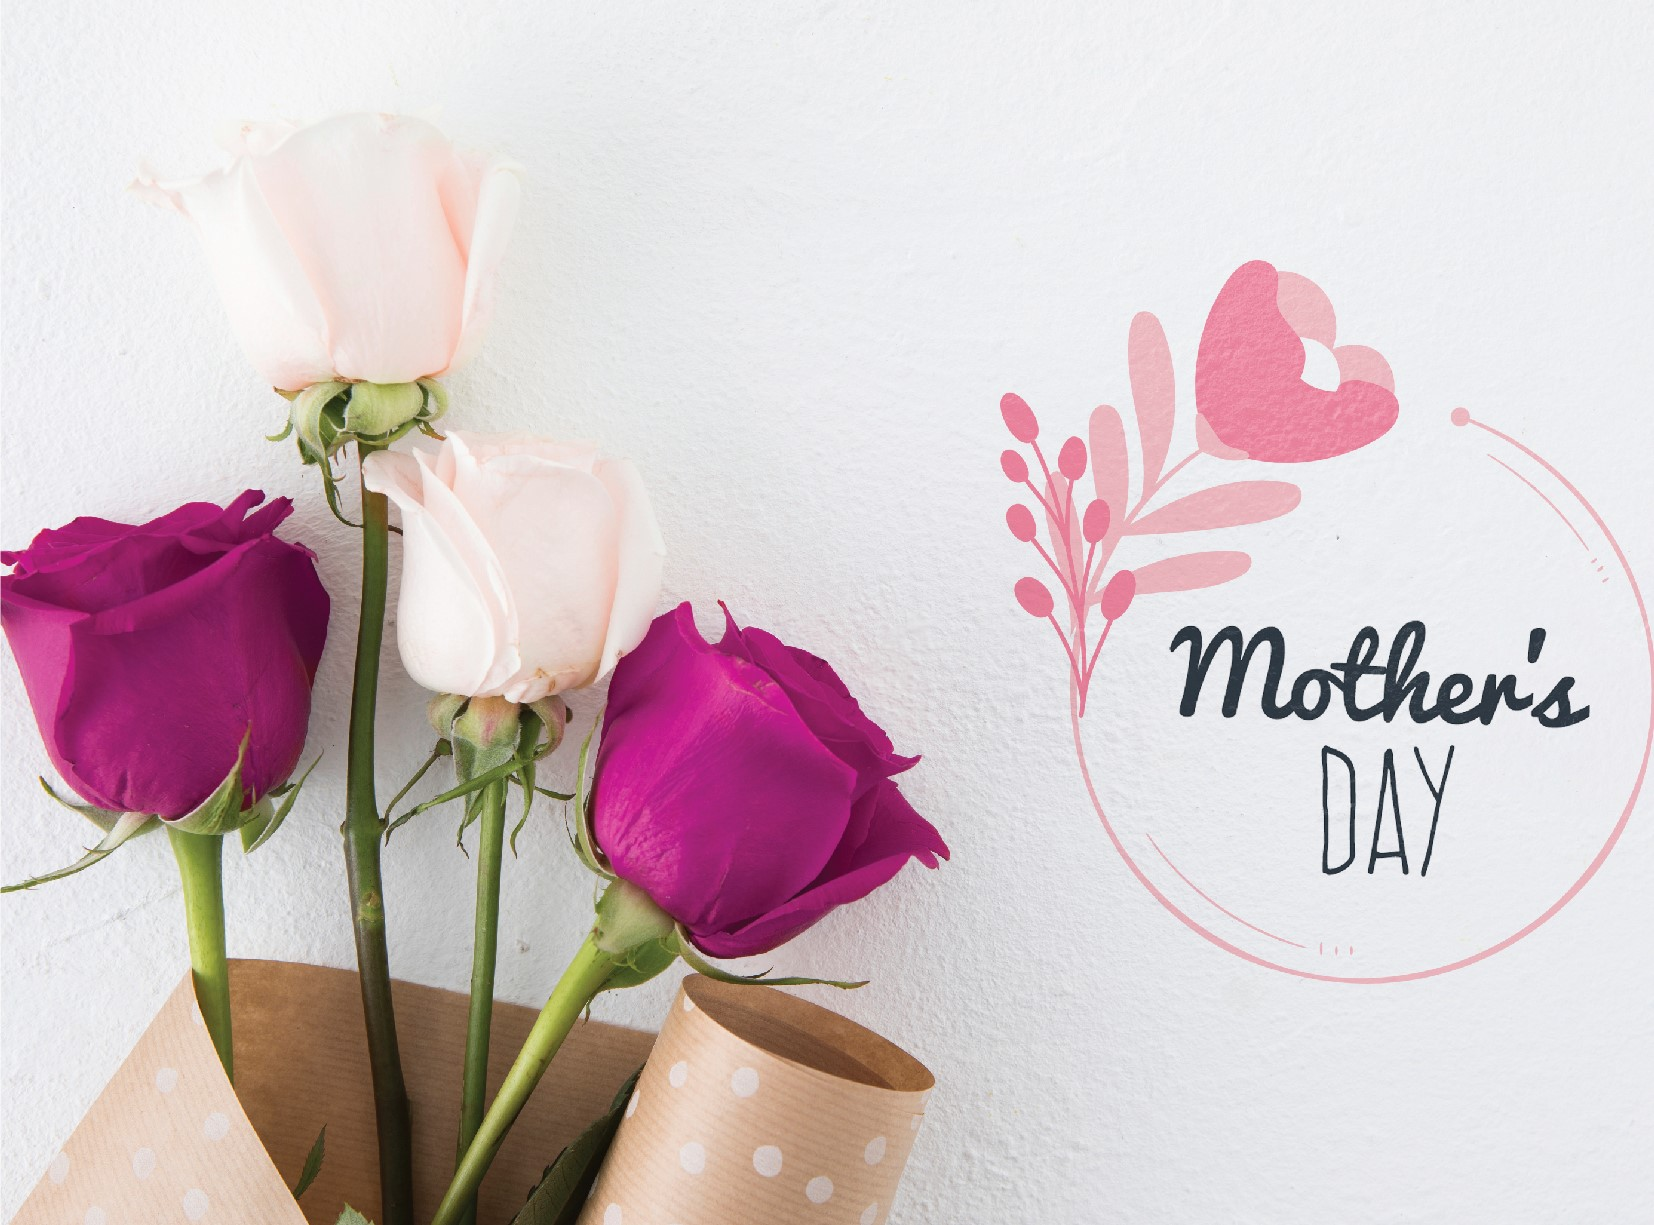 7 Mother's day Restaurant Promotion Ideas for 2019